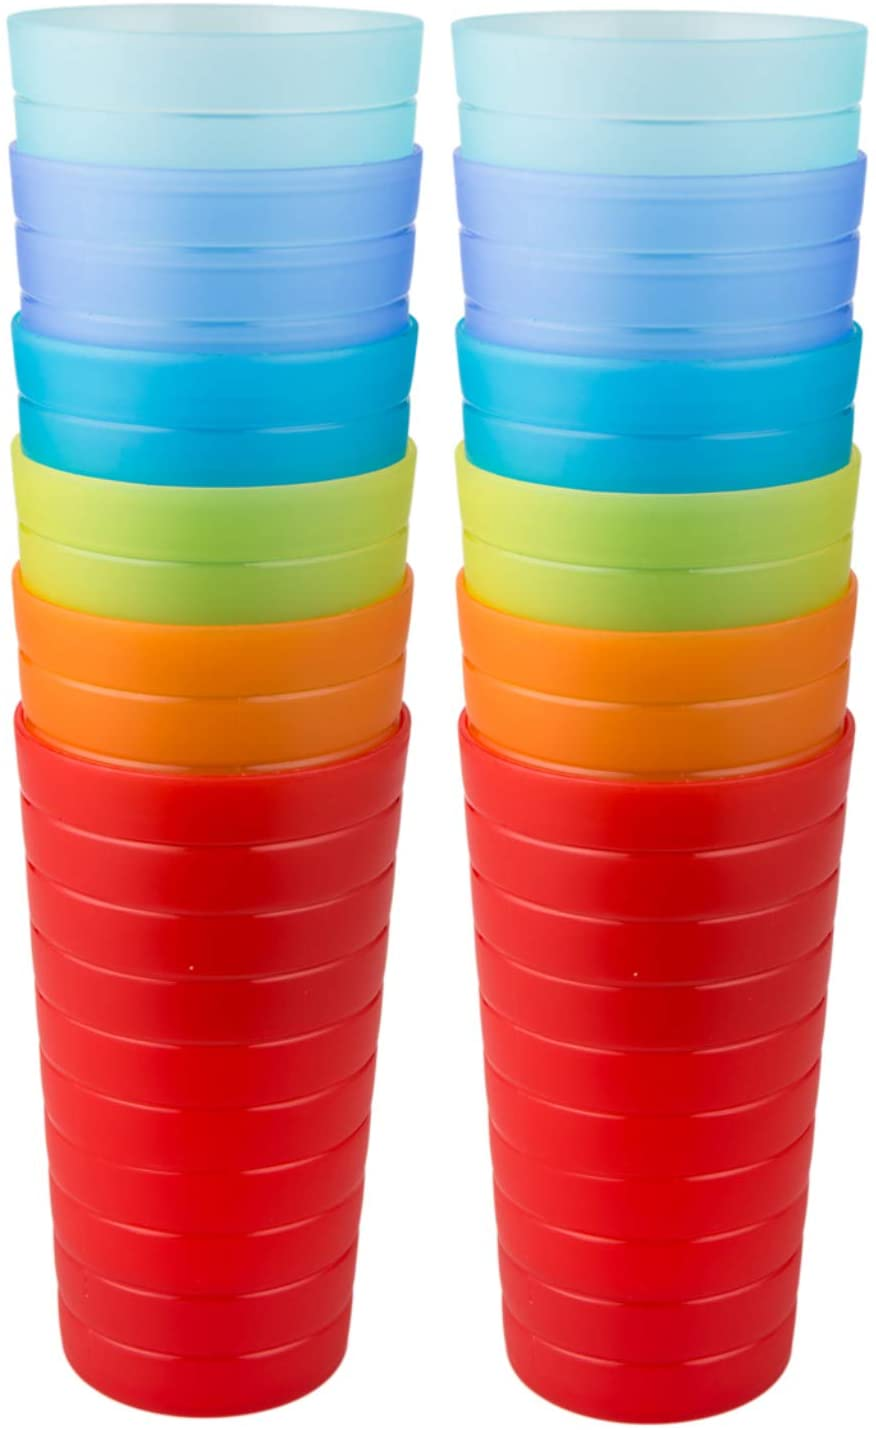 AOYITE Plastic Tumblers Drinking Glasses Set of 12   Break Resistant 22 oz Plastic Cups   6 Assorted Colors Restaurant Quality   BPA Free